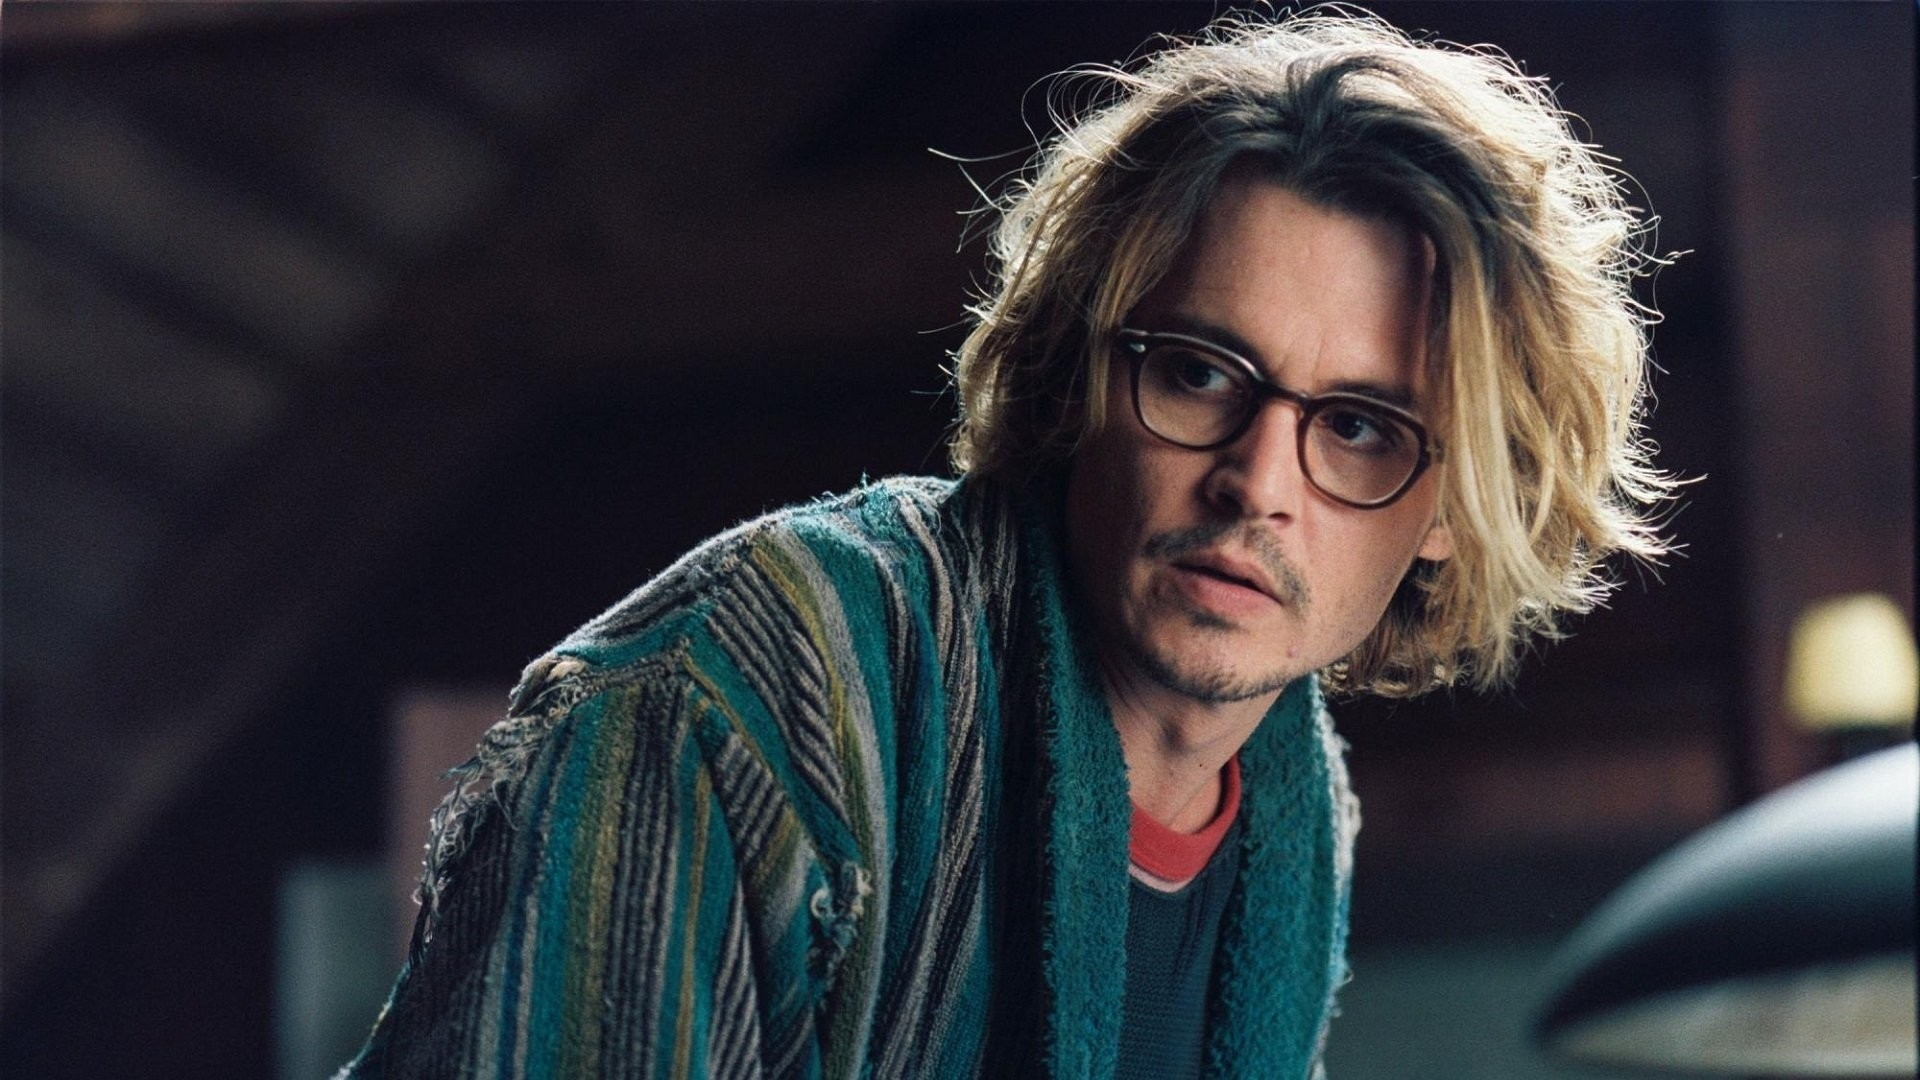 Johnny Depp Wallpaper image hd